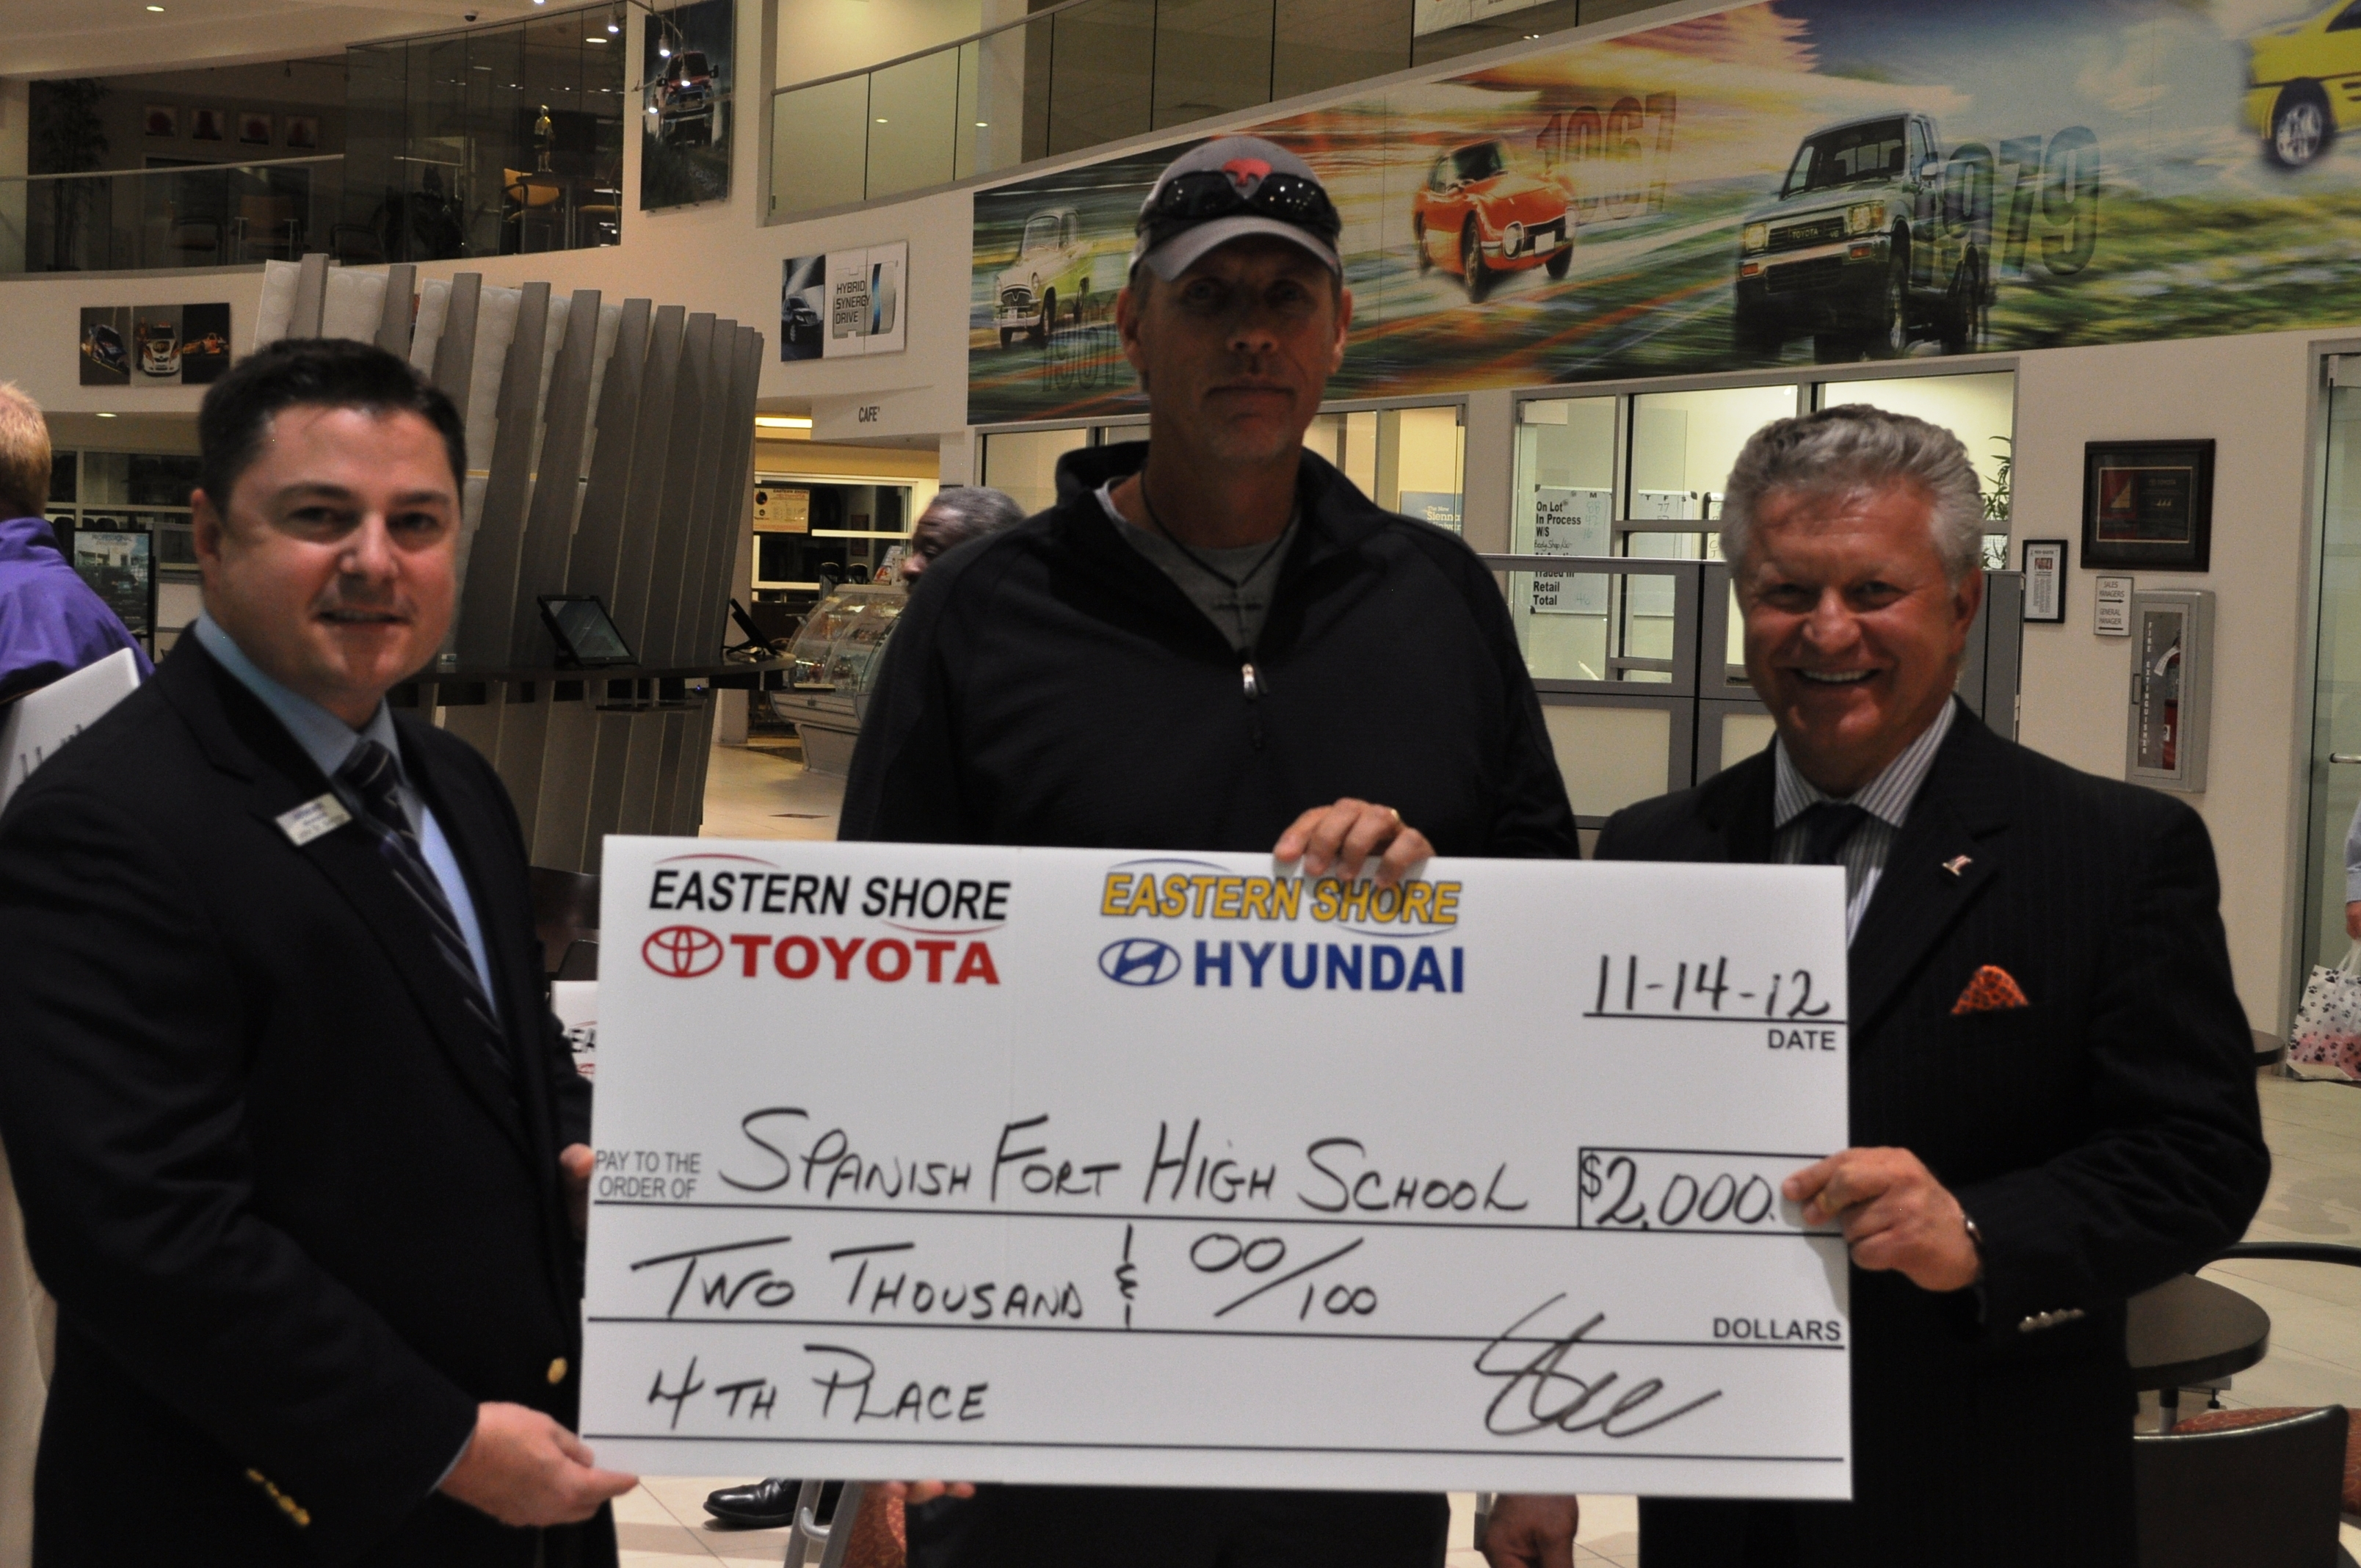 Eastern Shore Toyota image 3